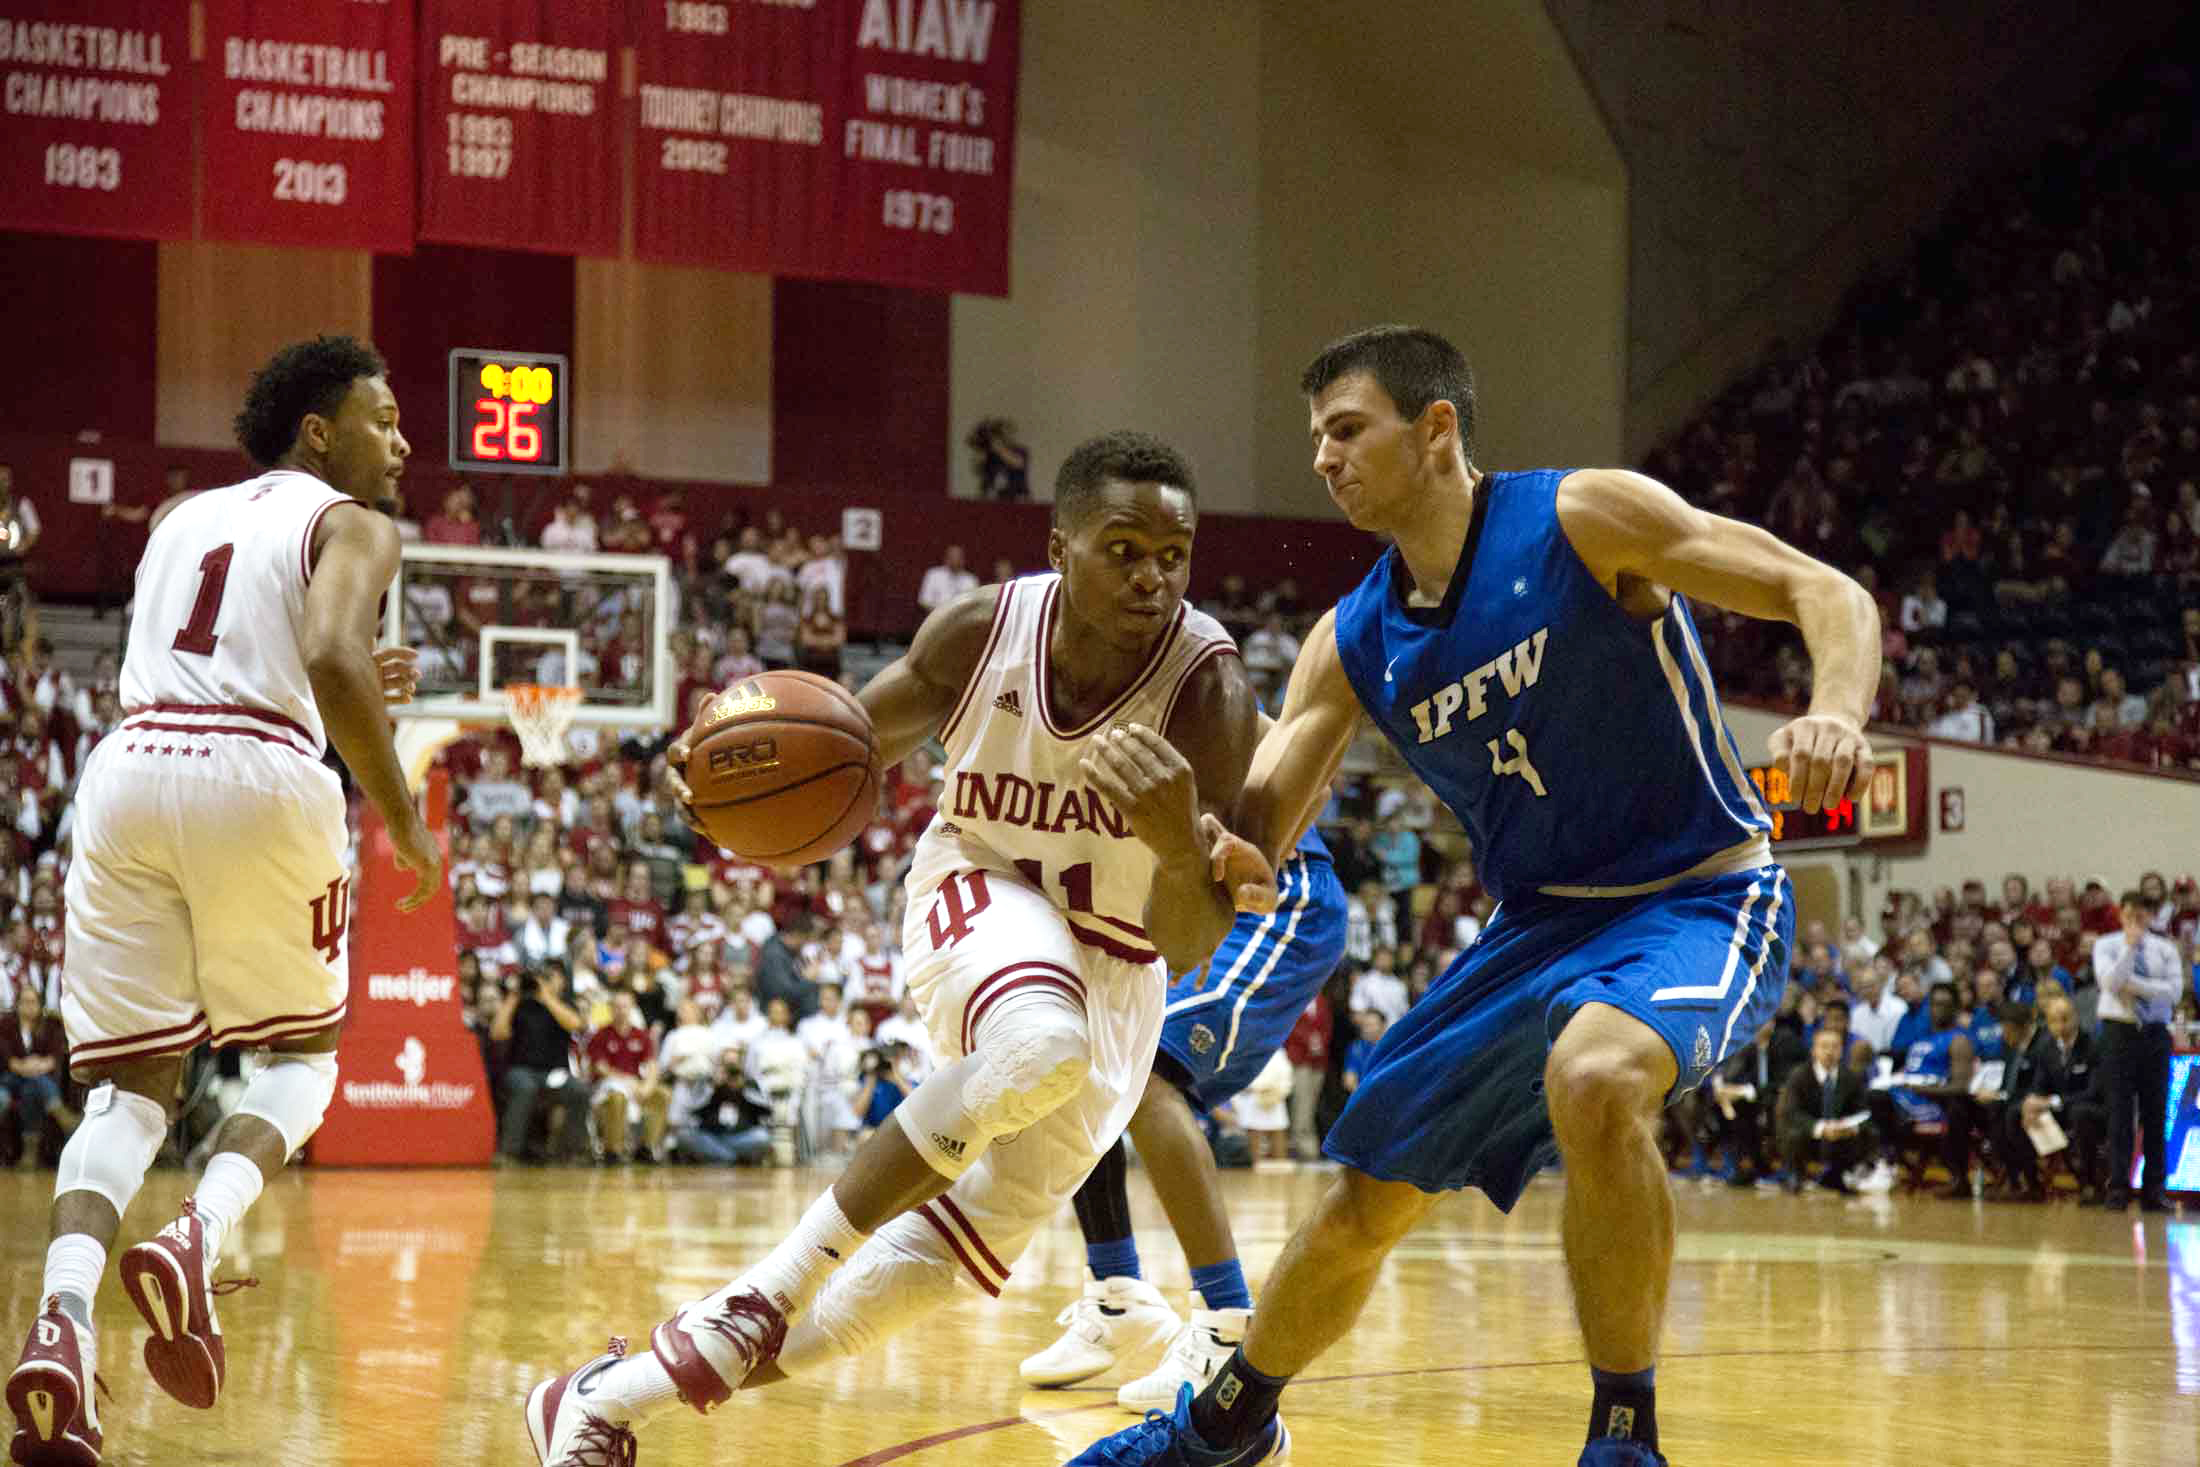 Yogi Ferrell attempts to drive past his defender during a game against IPFW.